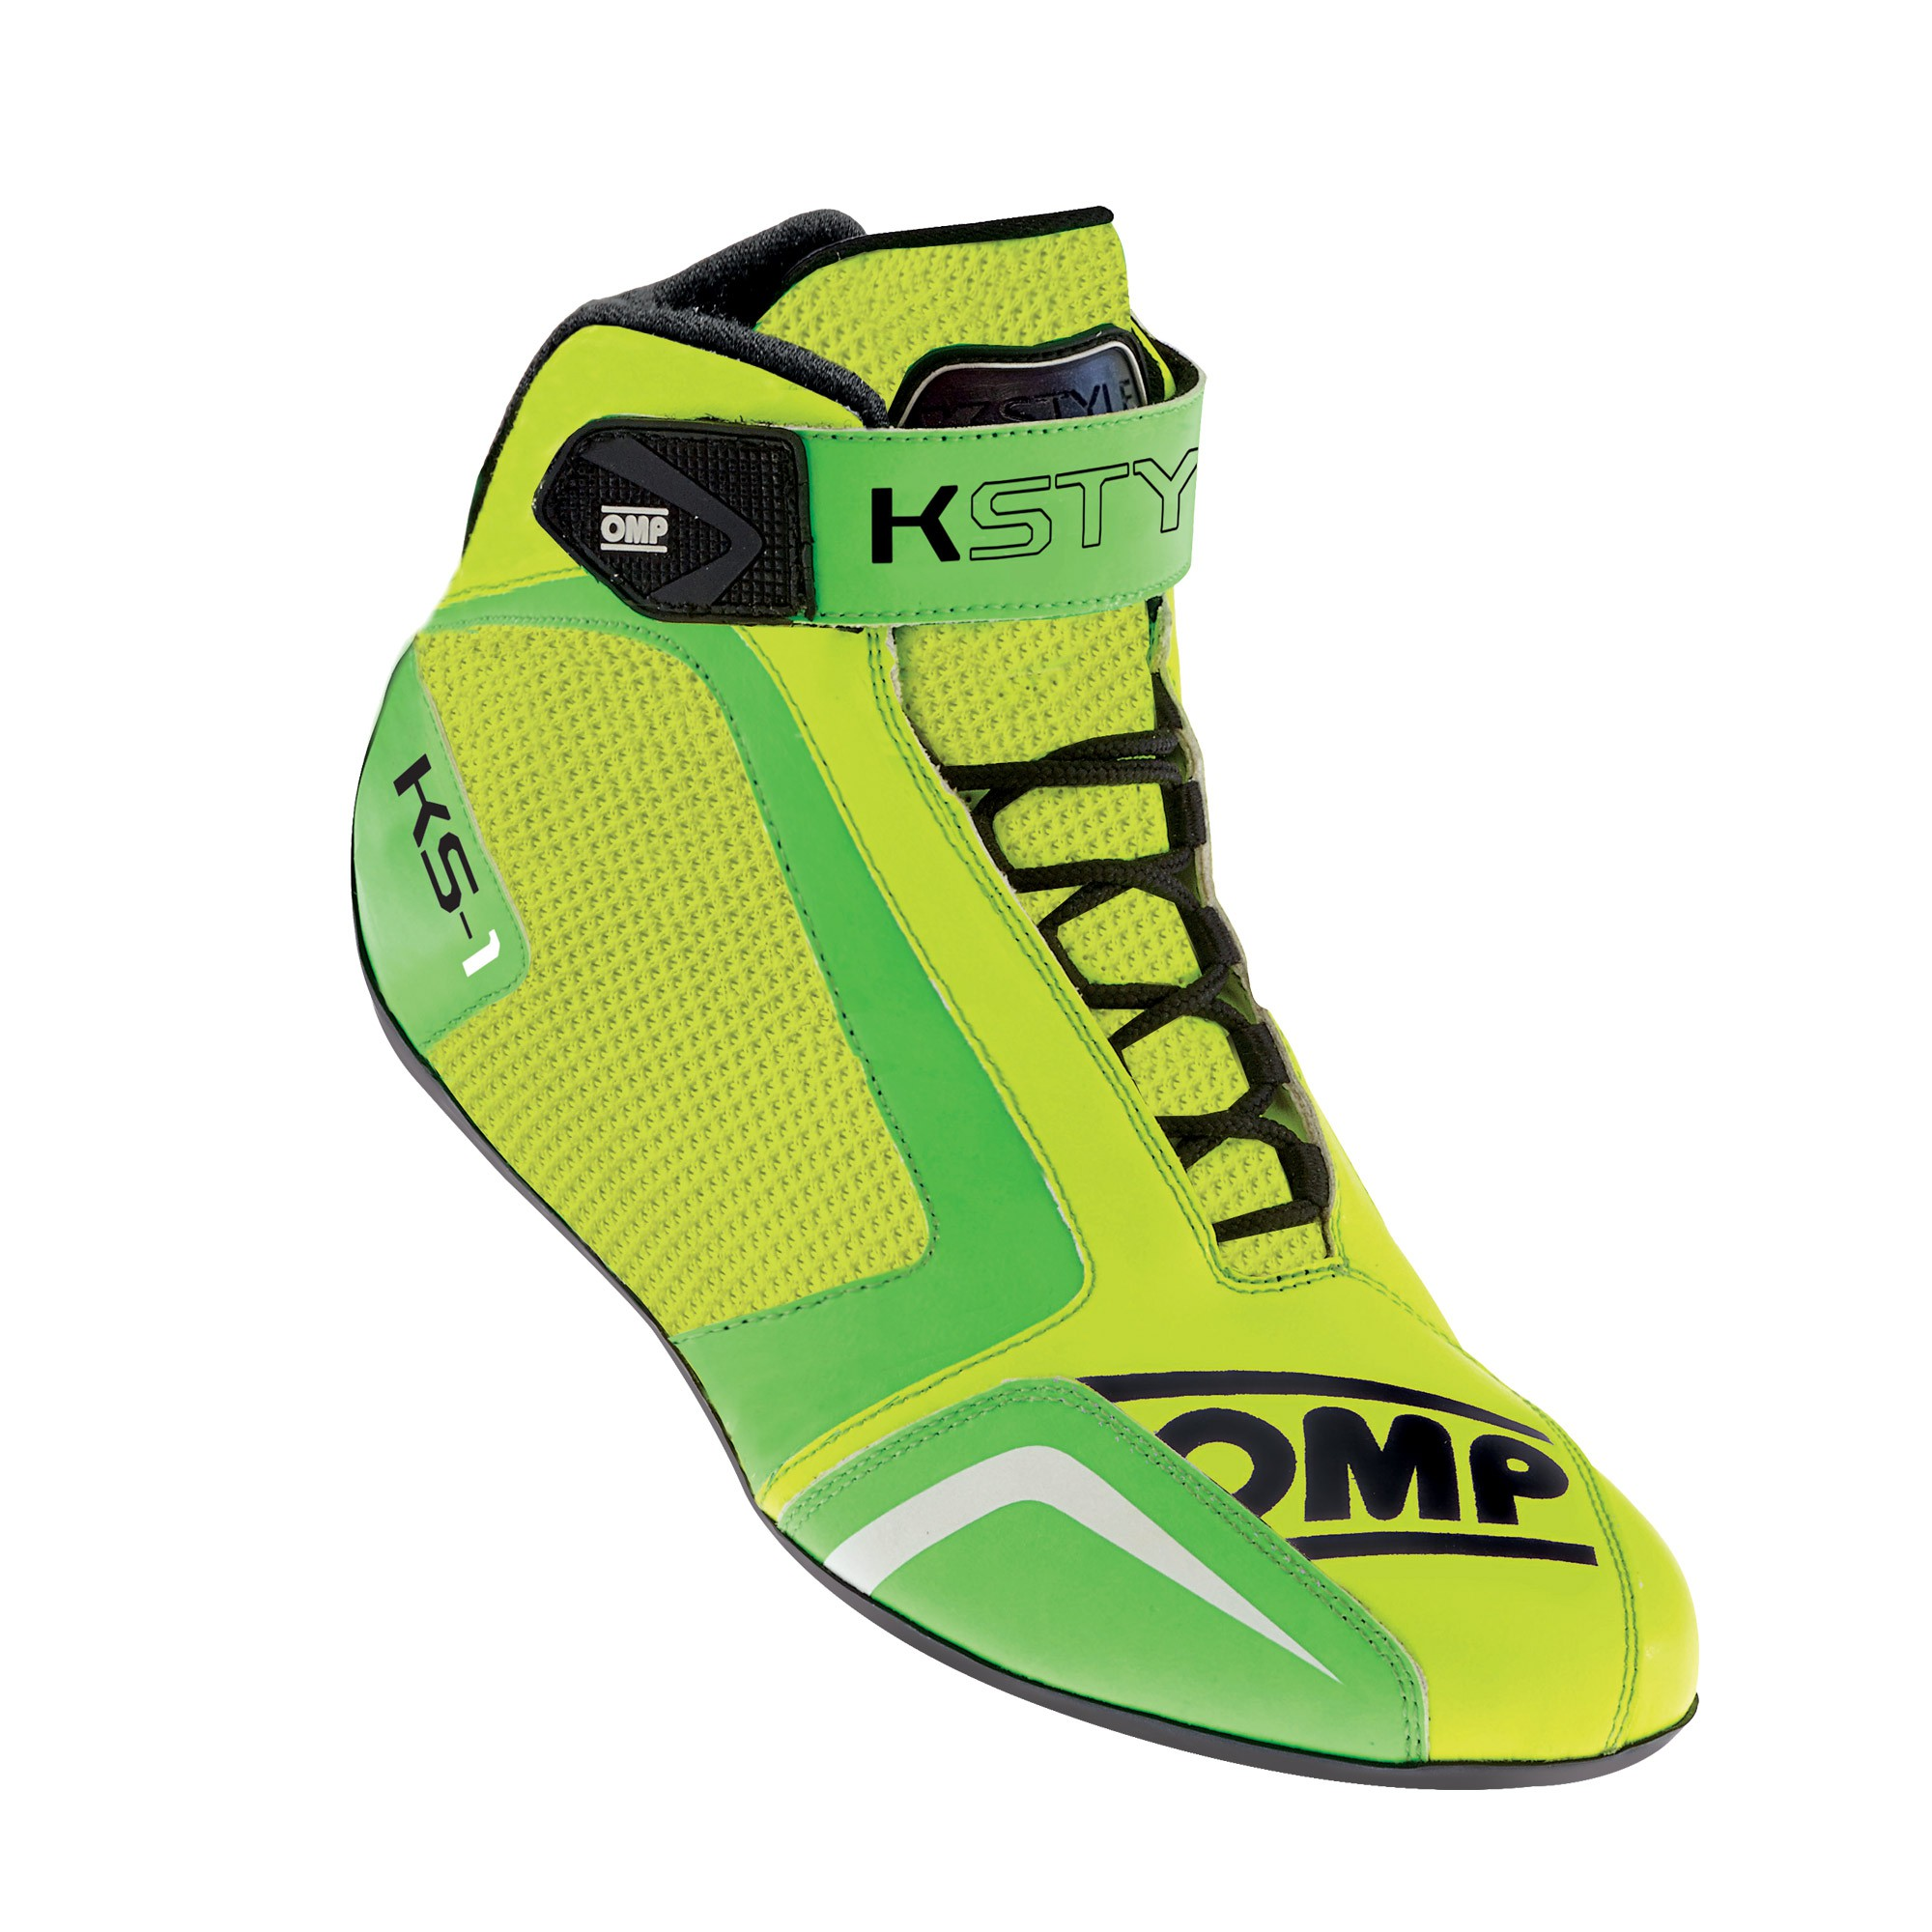 KS-1 SHOES YELLOW/GREEN SIZE 32